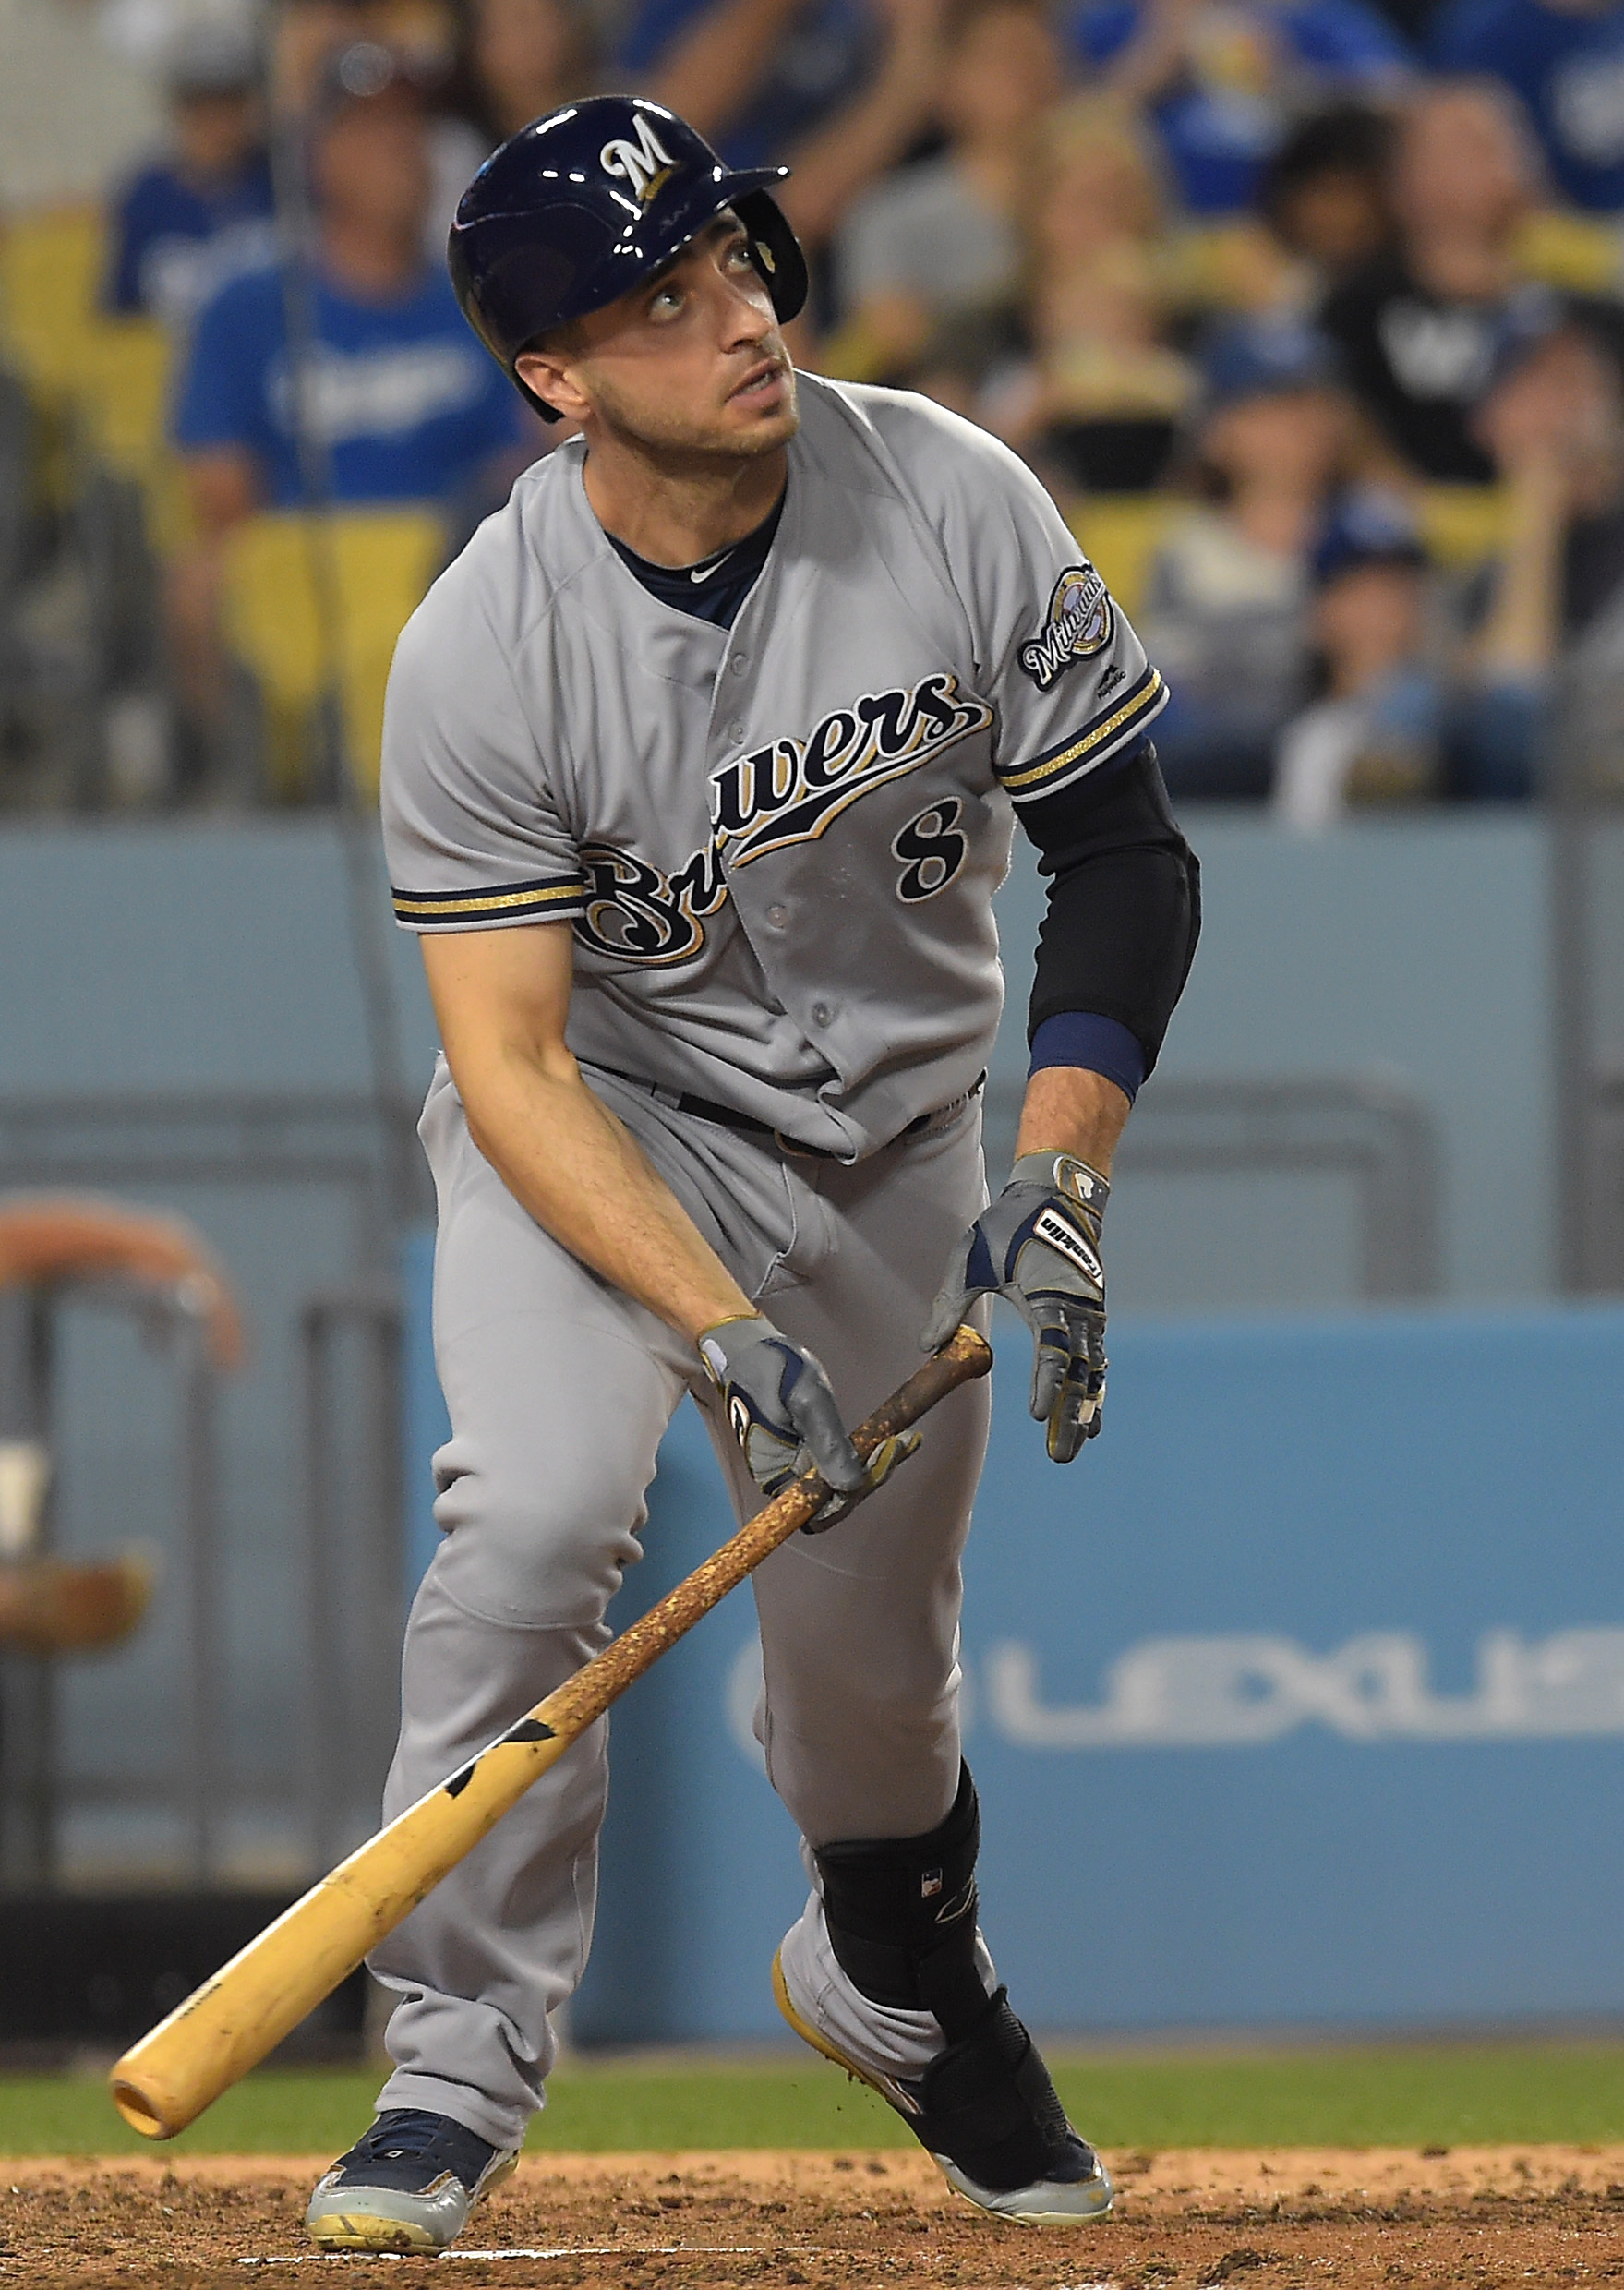 Looking For A Match In A Ryan Braun Trade - MLB Trade Rumors